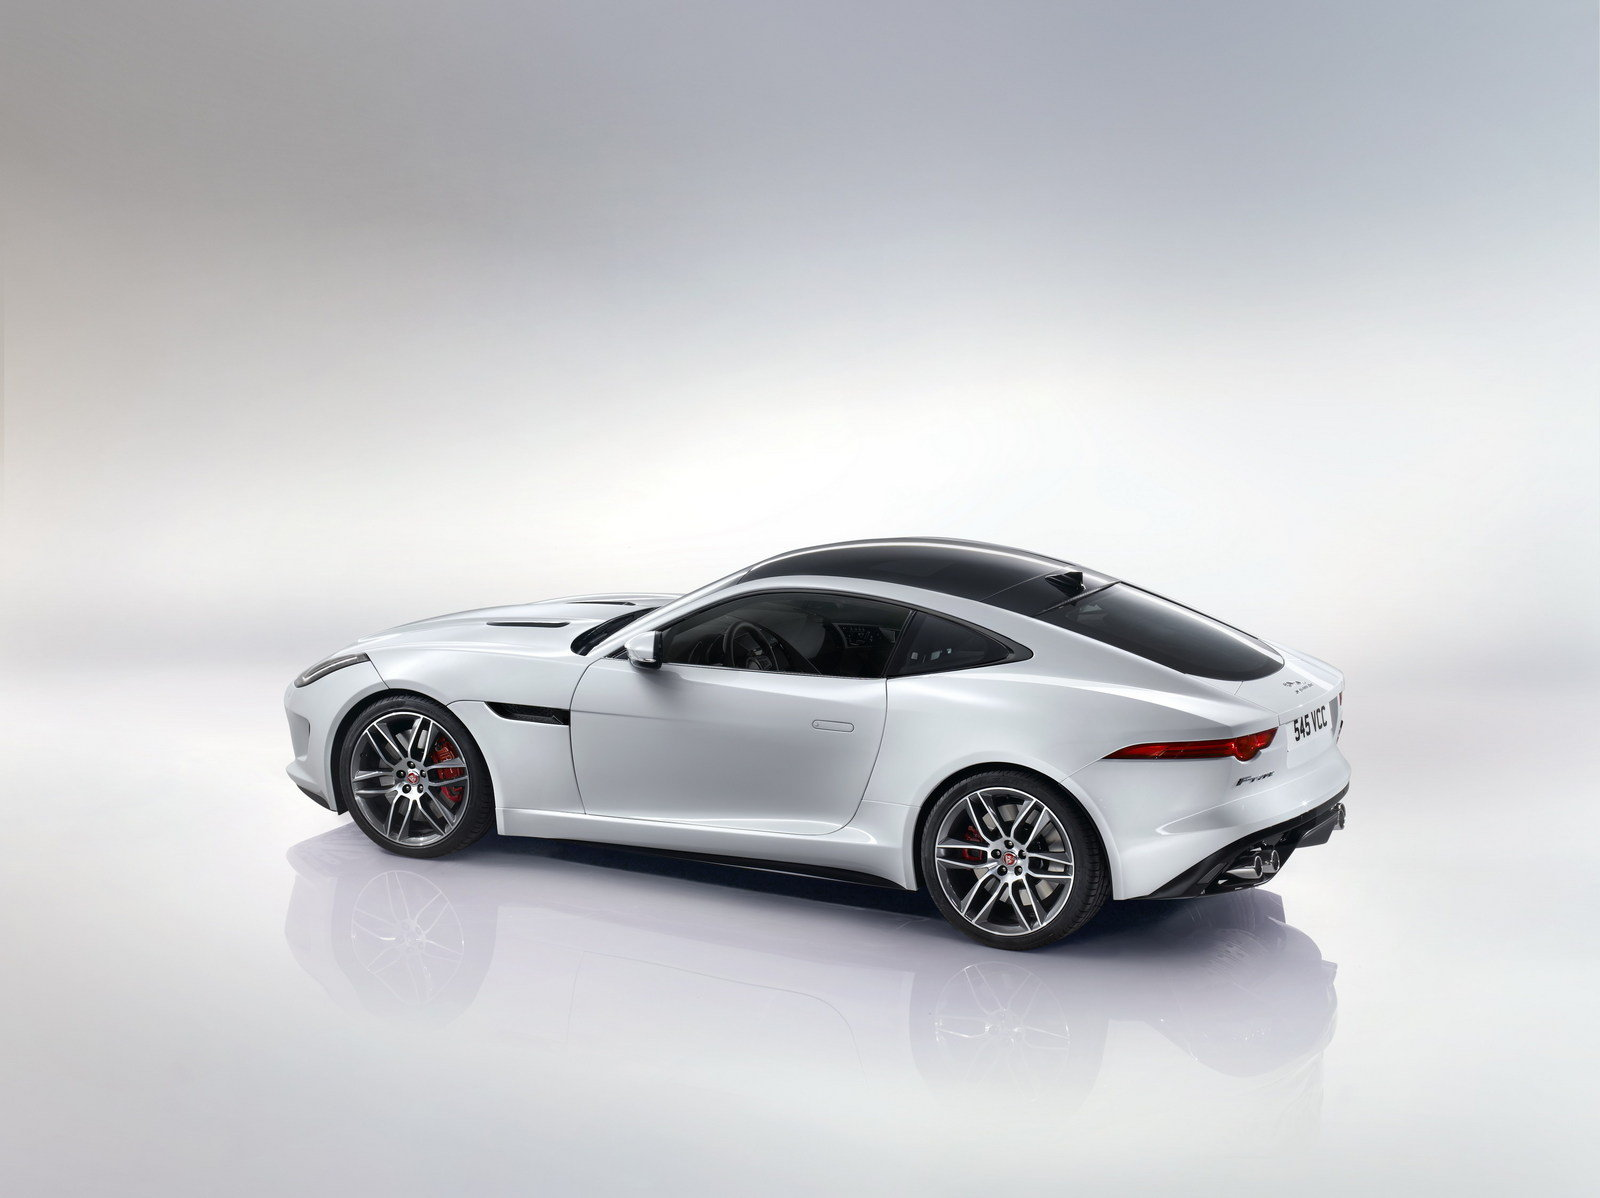 2014 jaguar f type r coupe review top speed. Black Bedroom Furniture Sets. Home Design Ideas